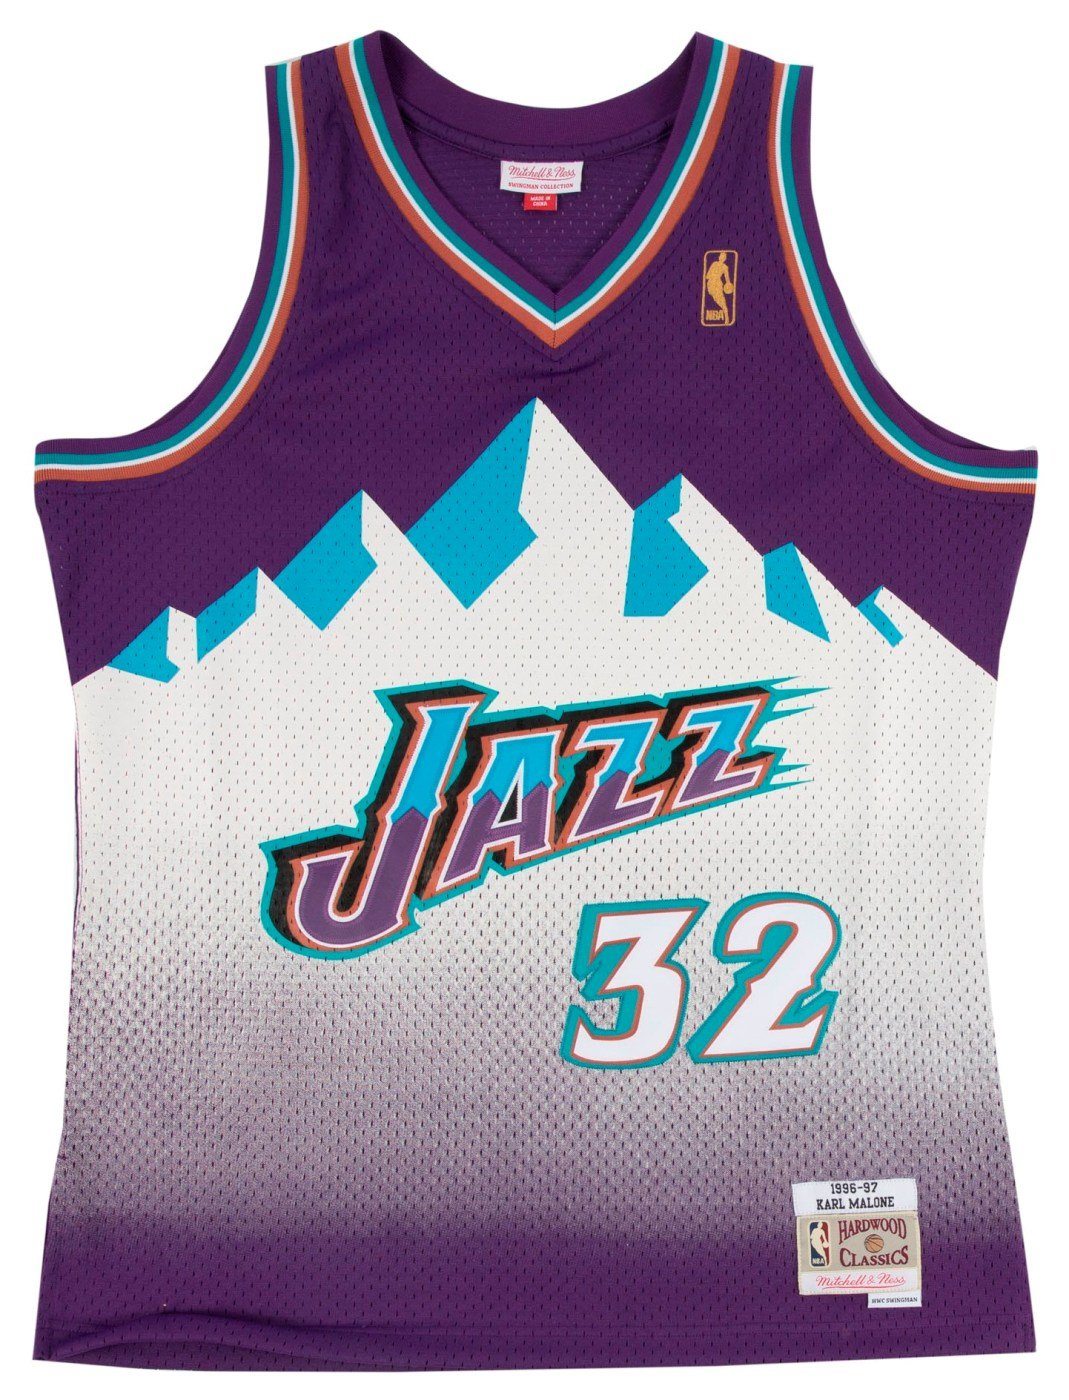 low priced 8d1d3 c20a4 Mitchell & Ness Utah Jazz Karl Malone Swingman Jersey